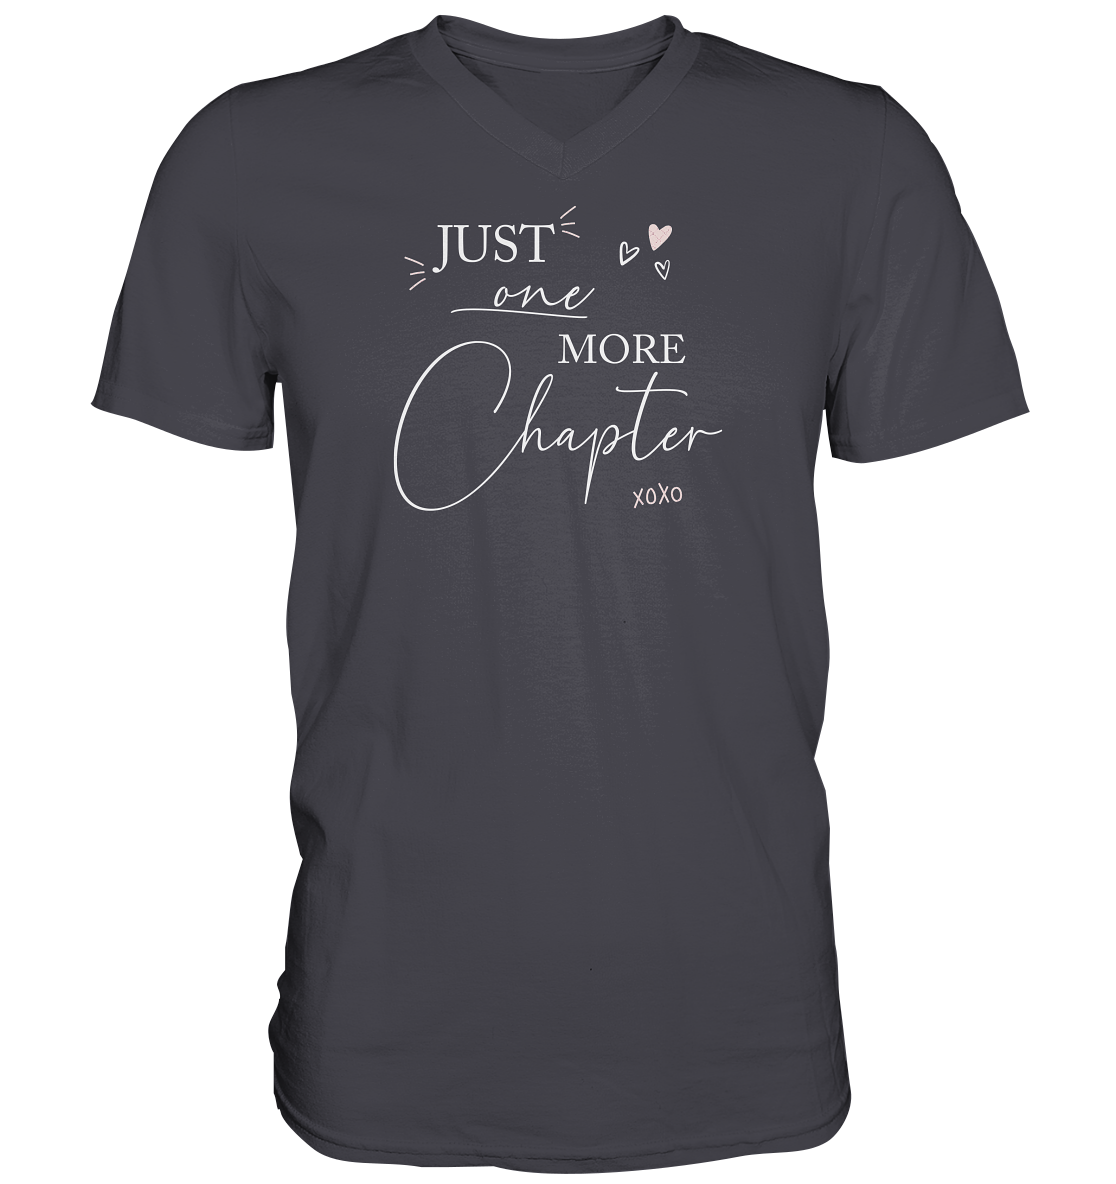 Just one more Chapter. white - Mens V-Neck Shirt